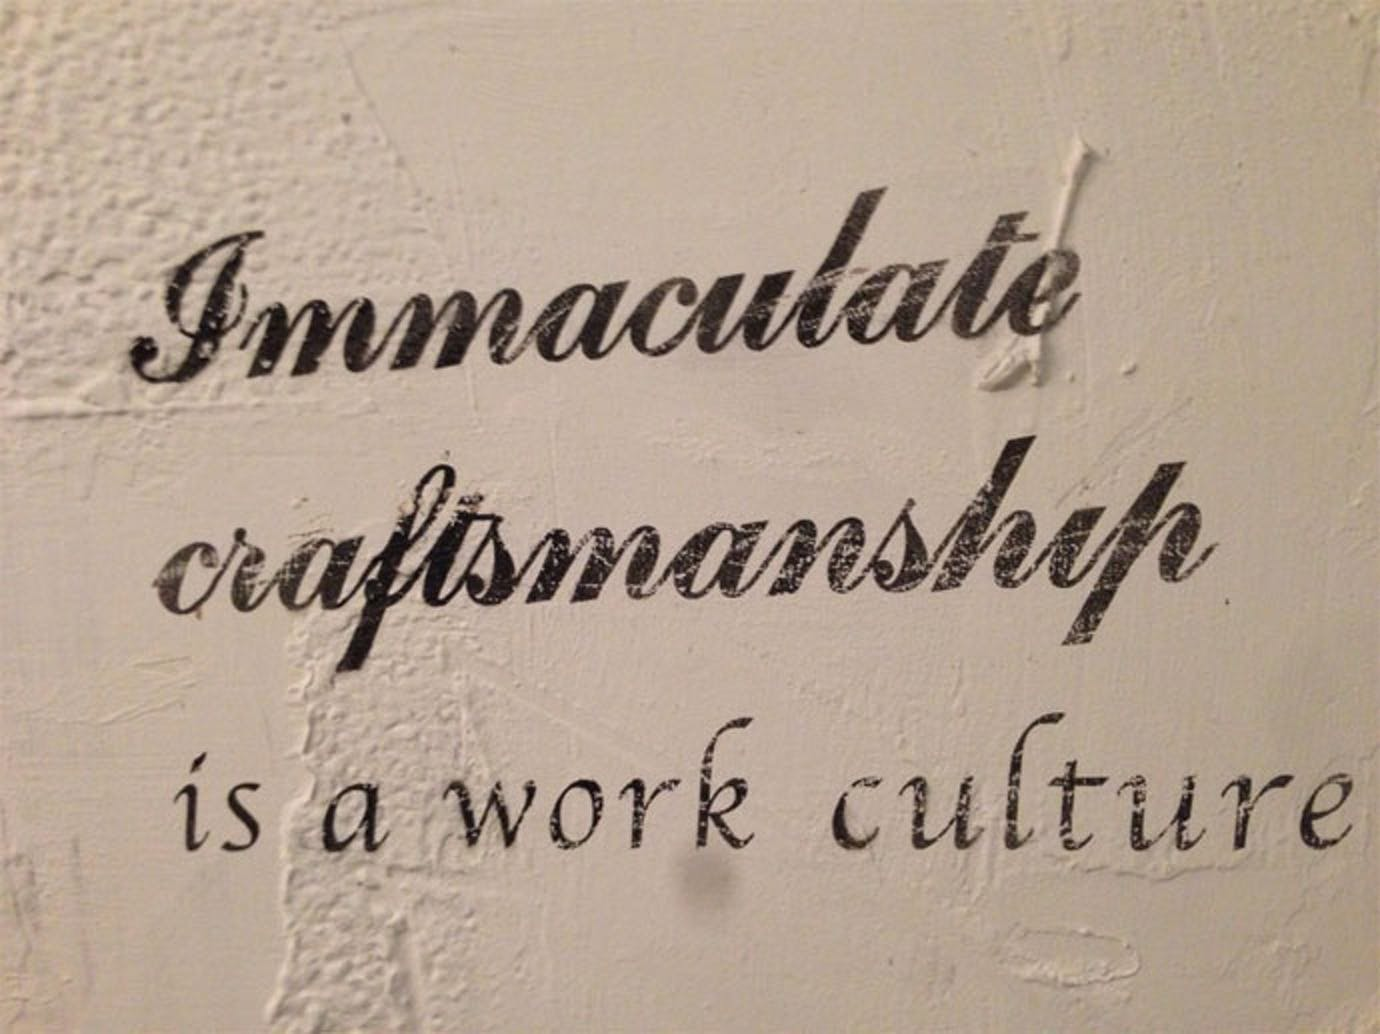 Immaculate craftmanship is a work culture